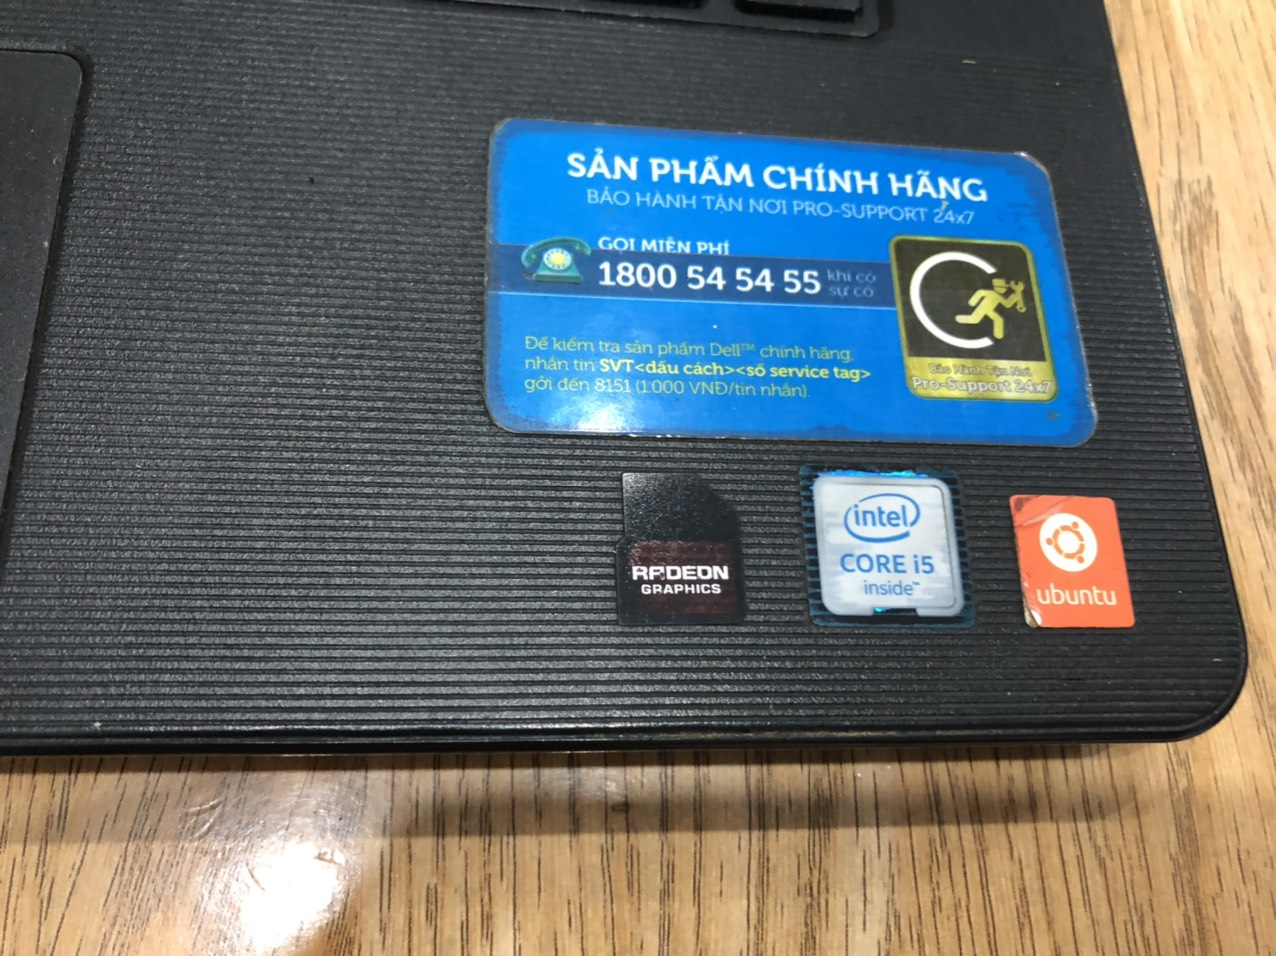 laptop-dell-ch%C6%A1i-game-gia-re-hcm-9